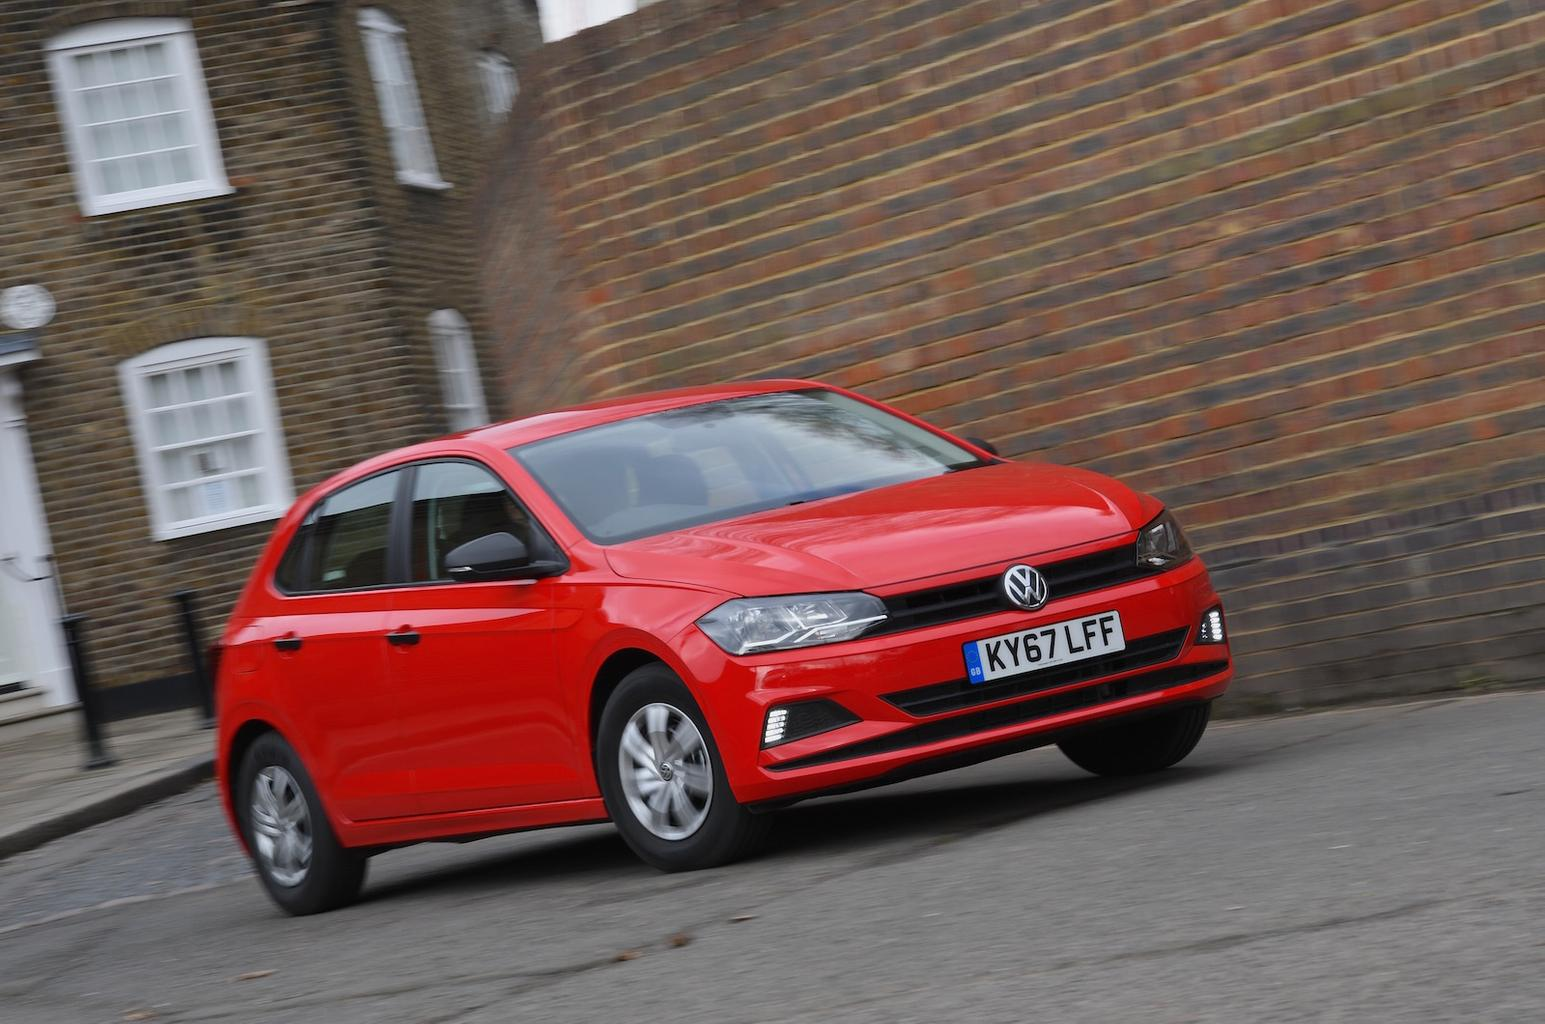 2018 Volkswagen Polo 1.0 65 S review – prices, specs and release date